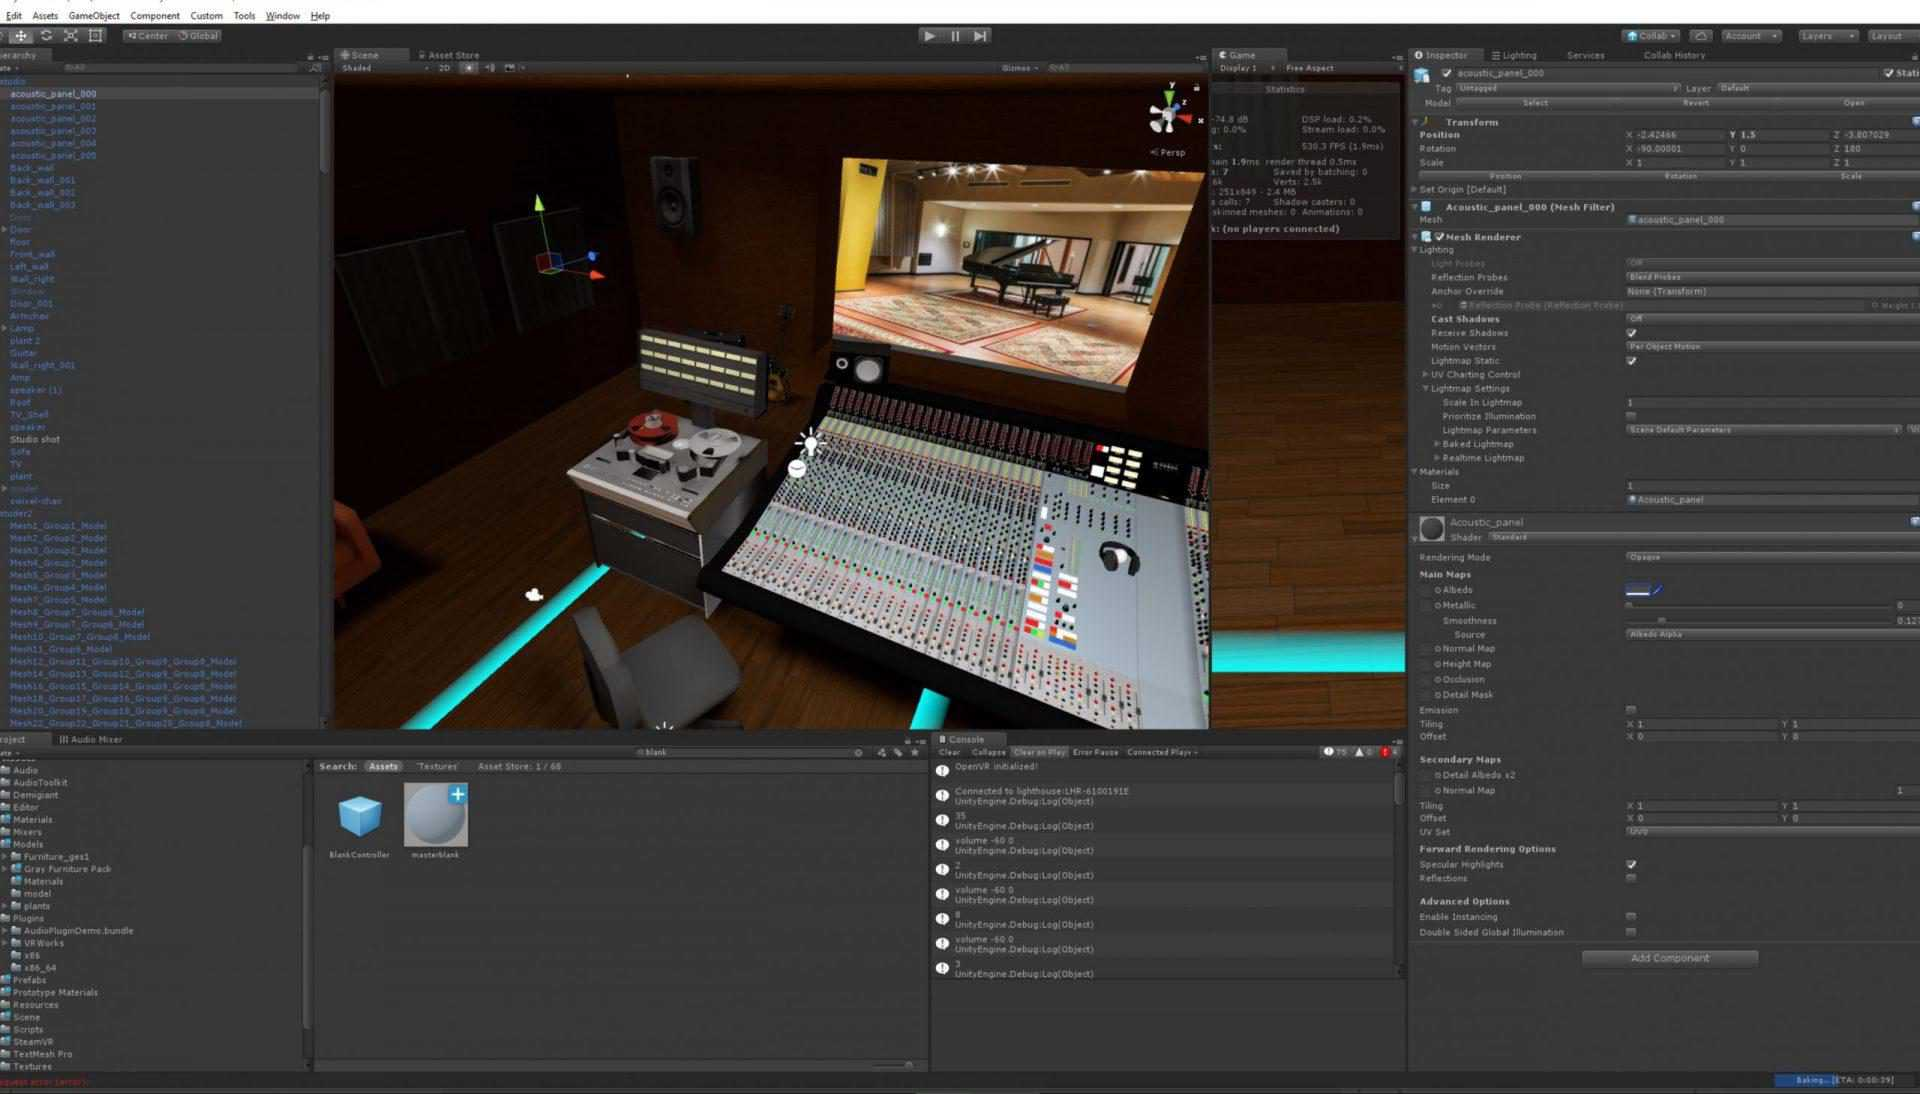 VR mixingconsole in virtual reality